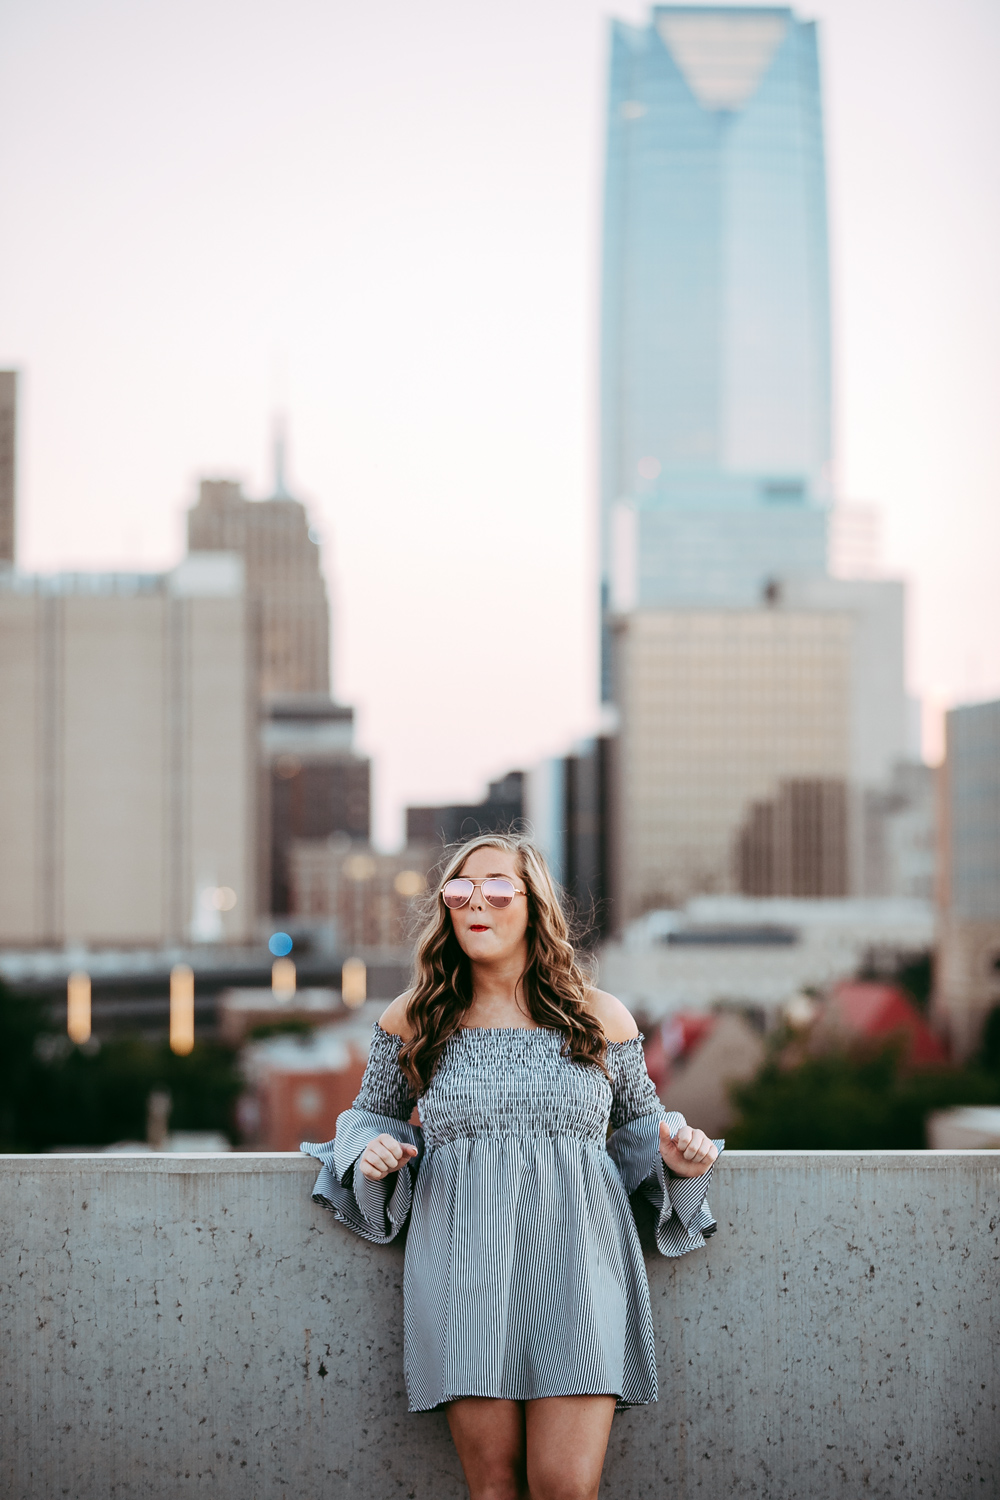 High school senior girl leaning against concrete wall with downtown OKC in the background by Amanda Lynn Photography.